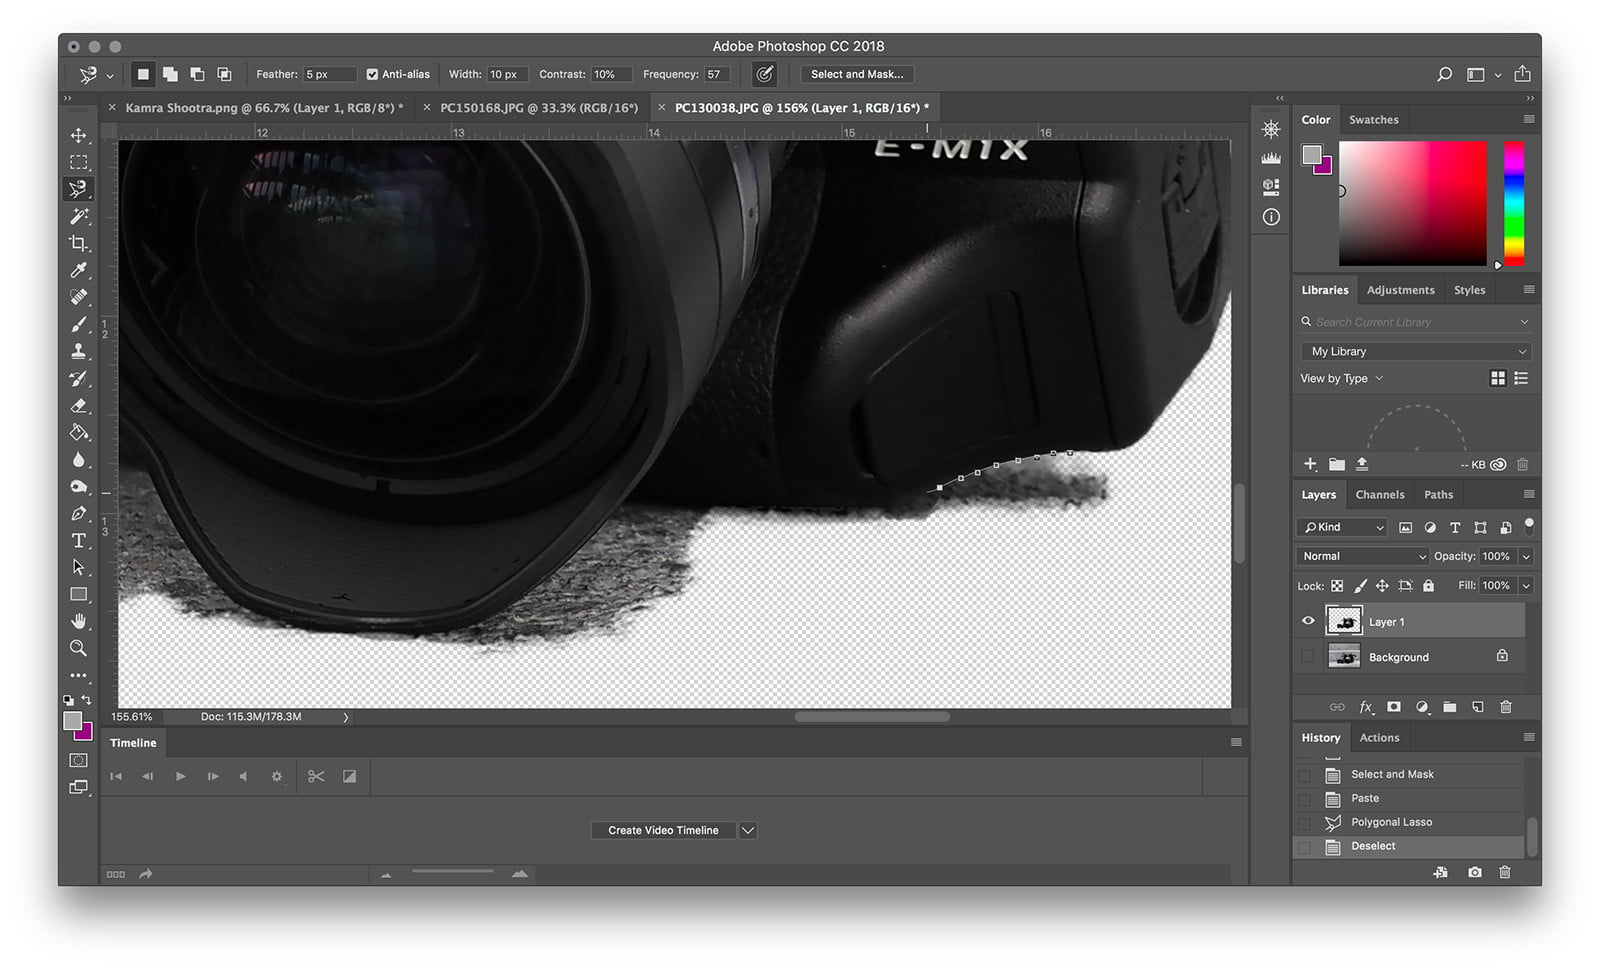 How to Make a Background Transparent in Photoshop | Digital